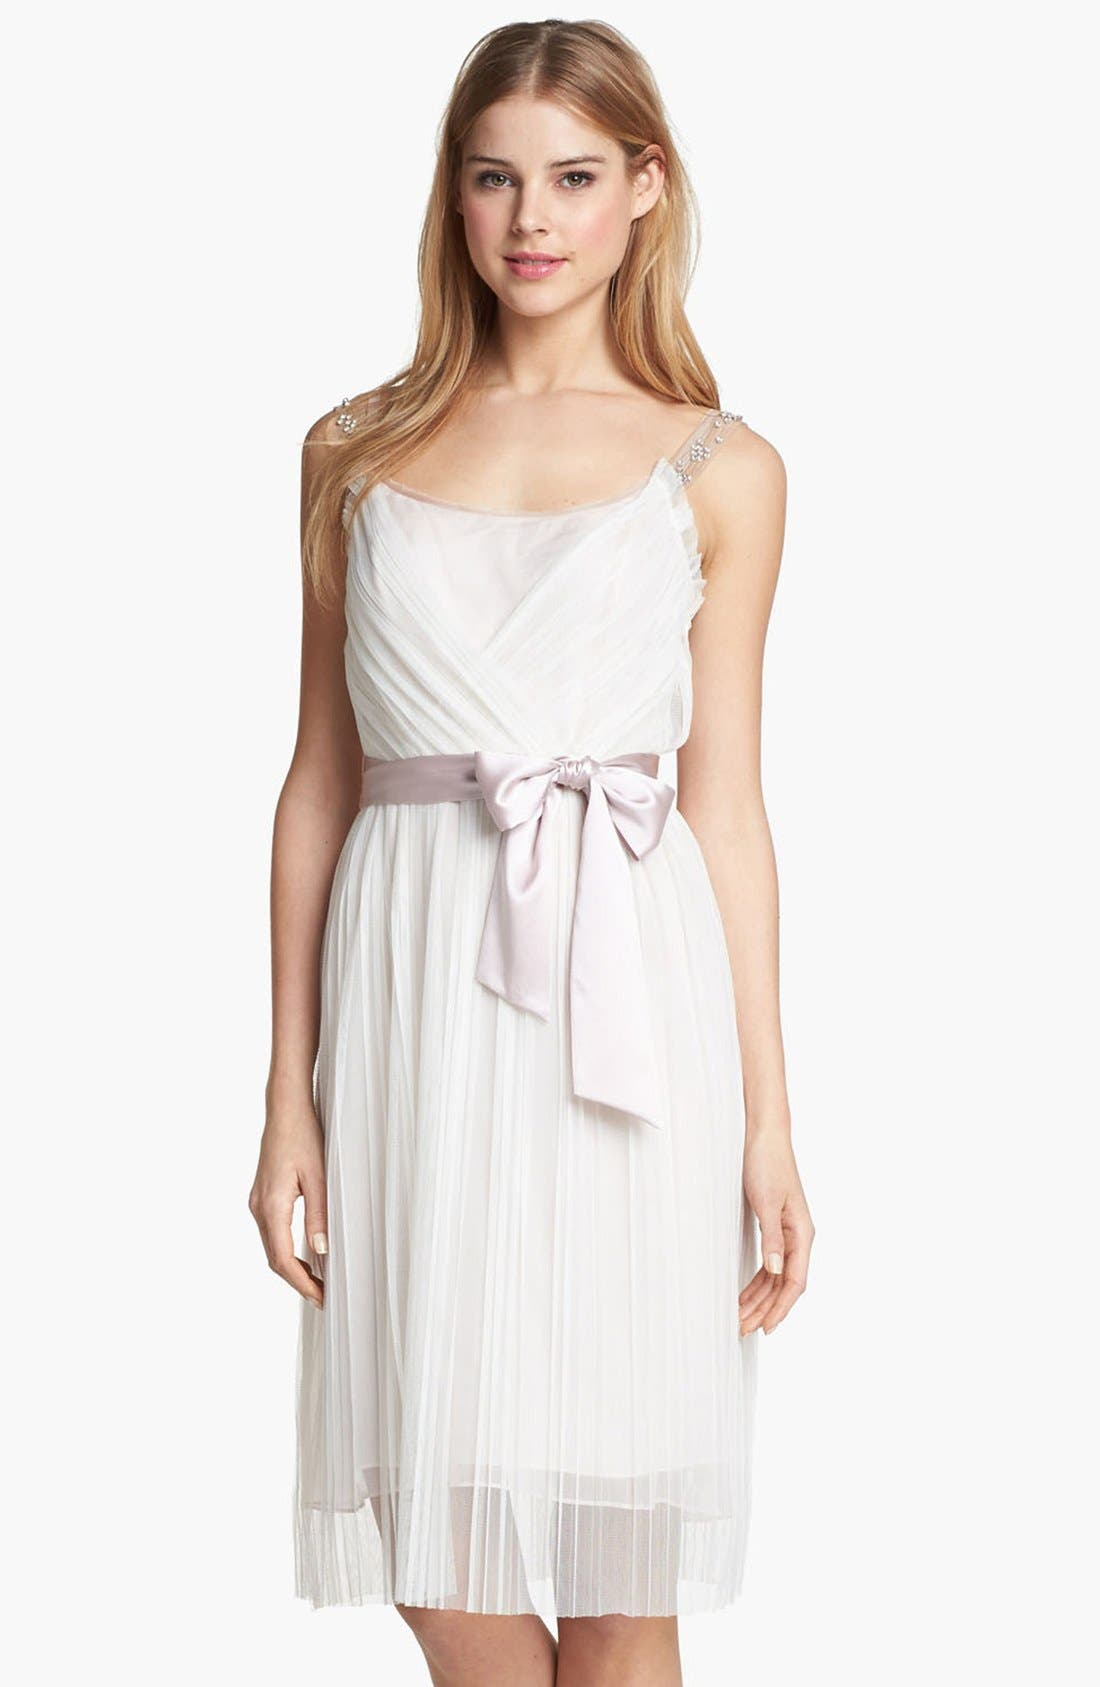 Alternate Image 1 Selected - Ivy & Blu Embellished Pleat Chiffon Dress (Online Only)